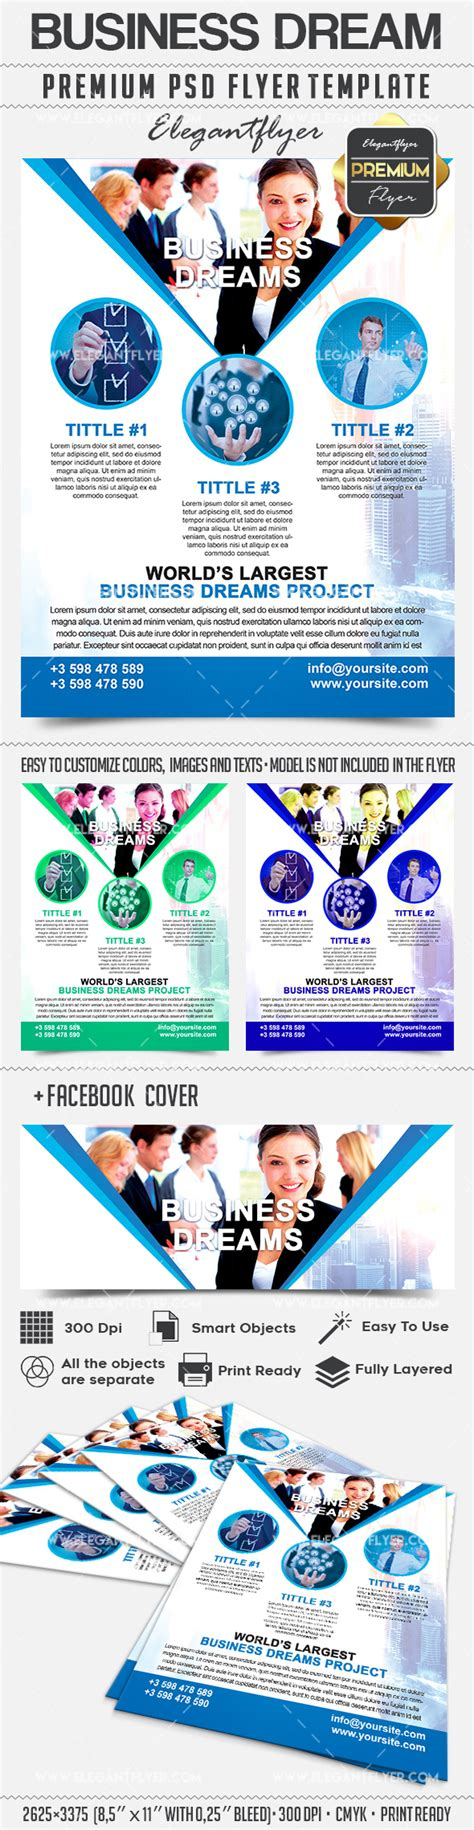 Business Dream Flyer Psd Template By Elegantflyer Business Flyer Template Psd